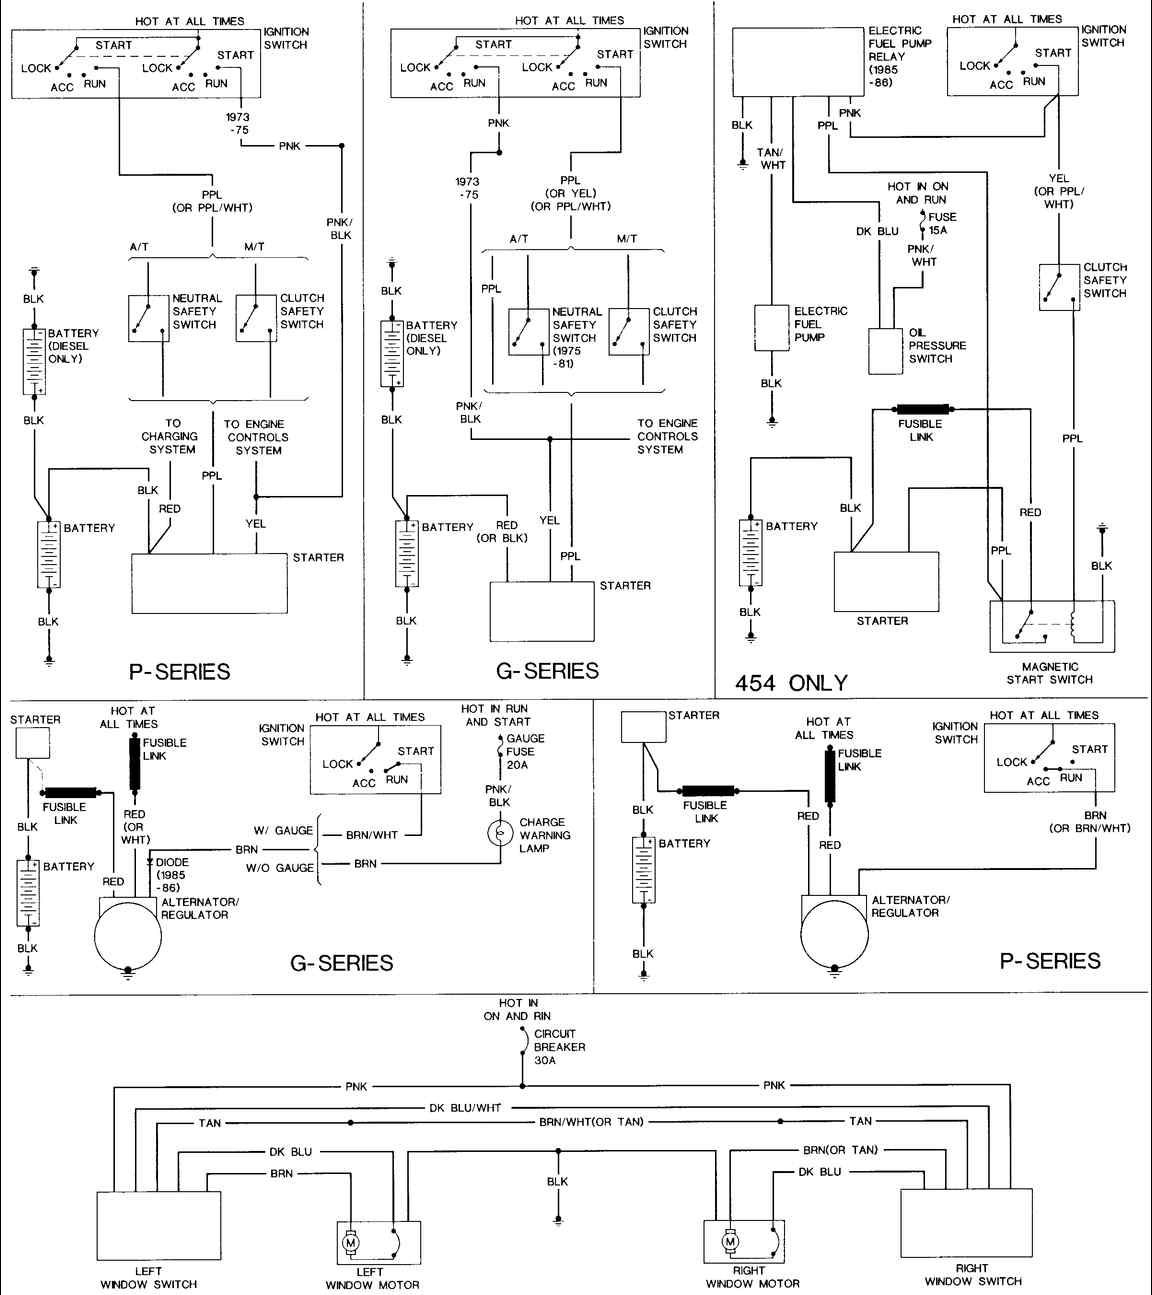 0c73623a181dc376dbb4777e2029d285 85 chevy truck wiring diagram 85 chevy van the steering column 1969 c20 wiring diagram at alyssarenee.co